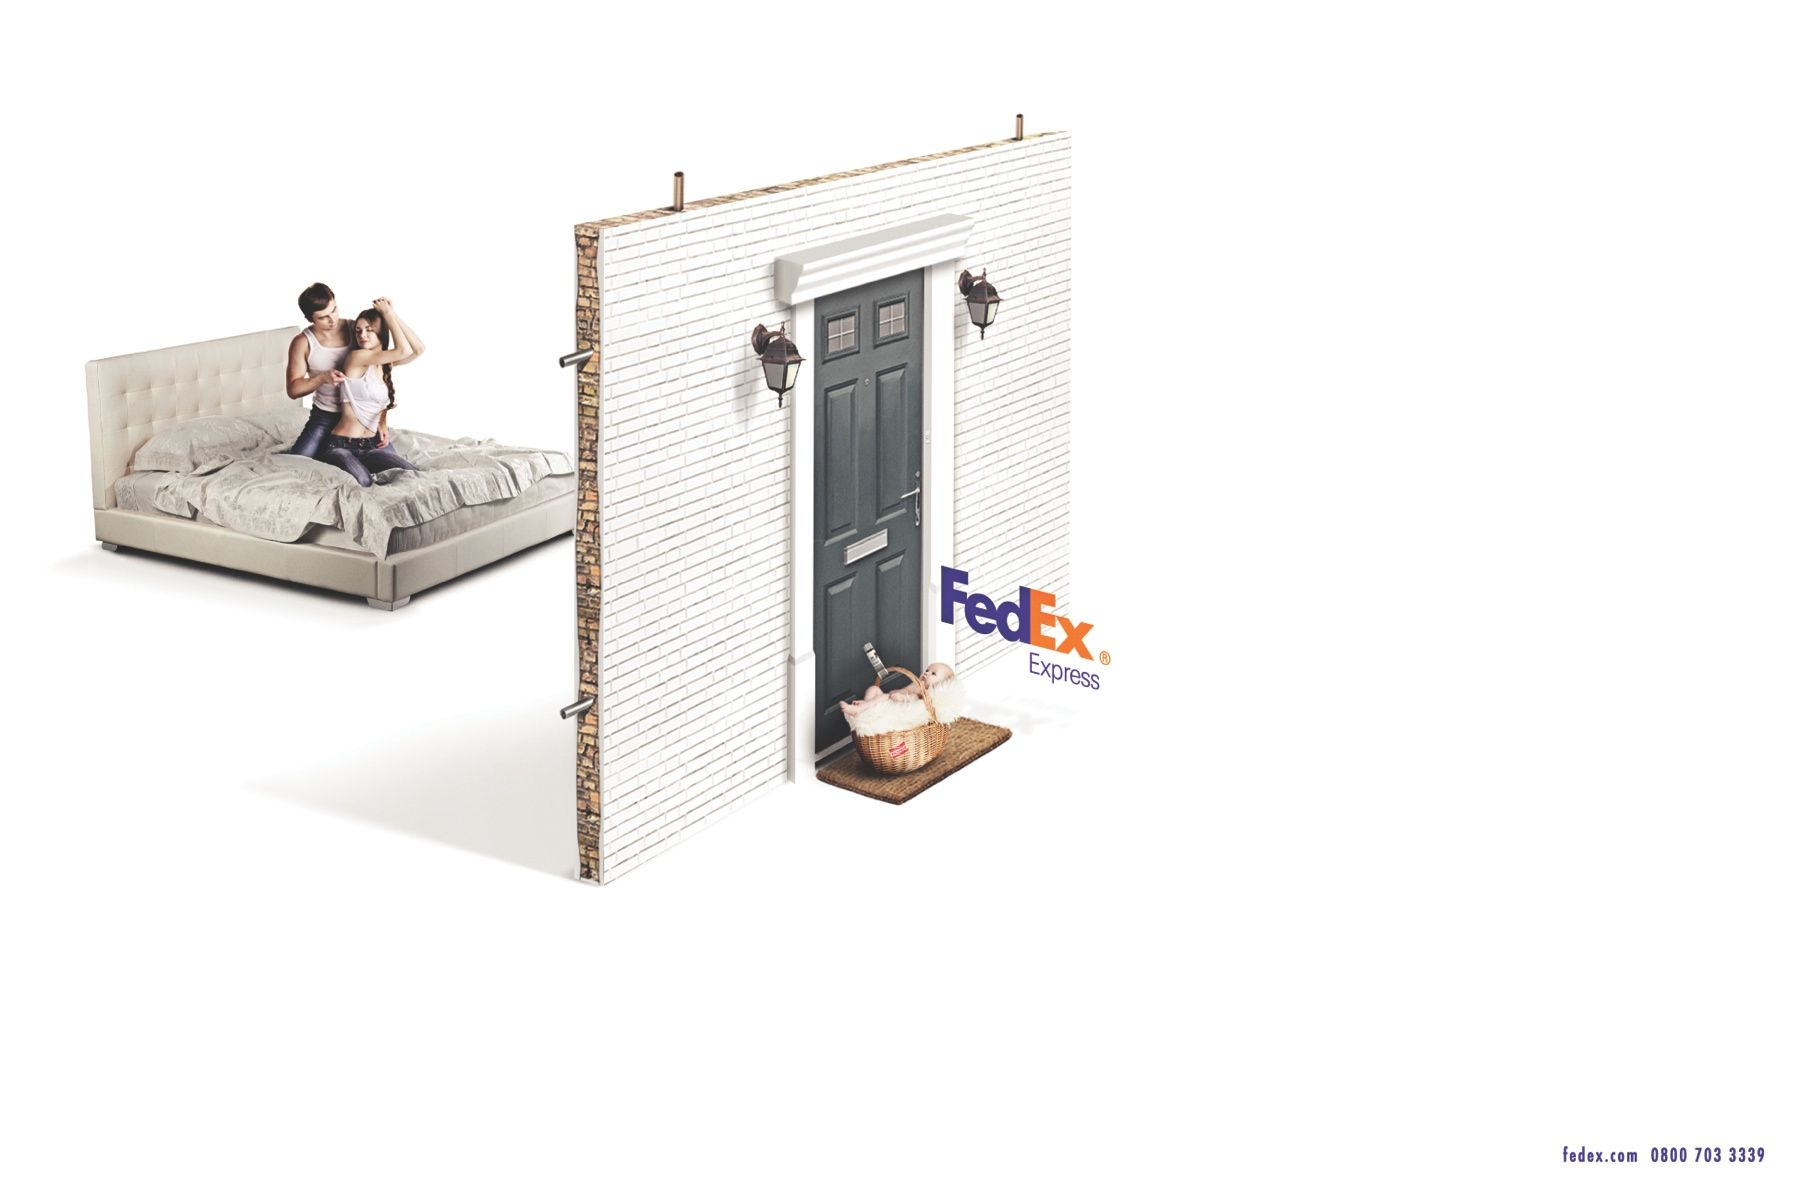 Cost of color printing at fedex - Print Advertisment Created By Cuca Escola De Criativos Brazil For Fedex Within The Category Transport